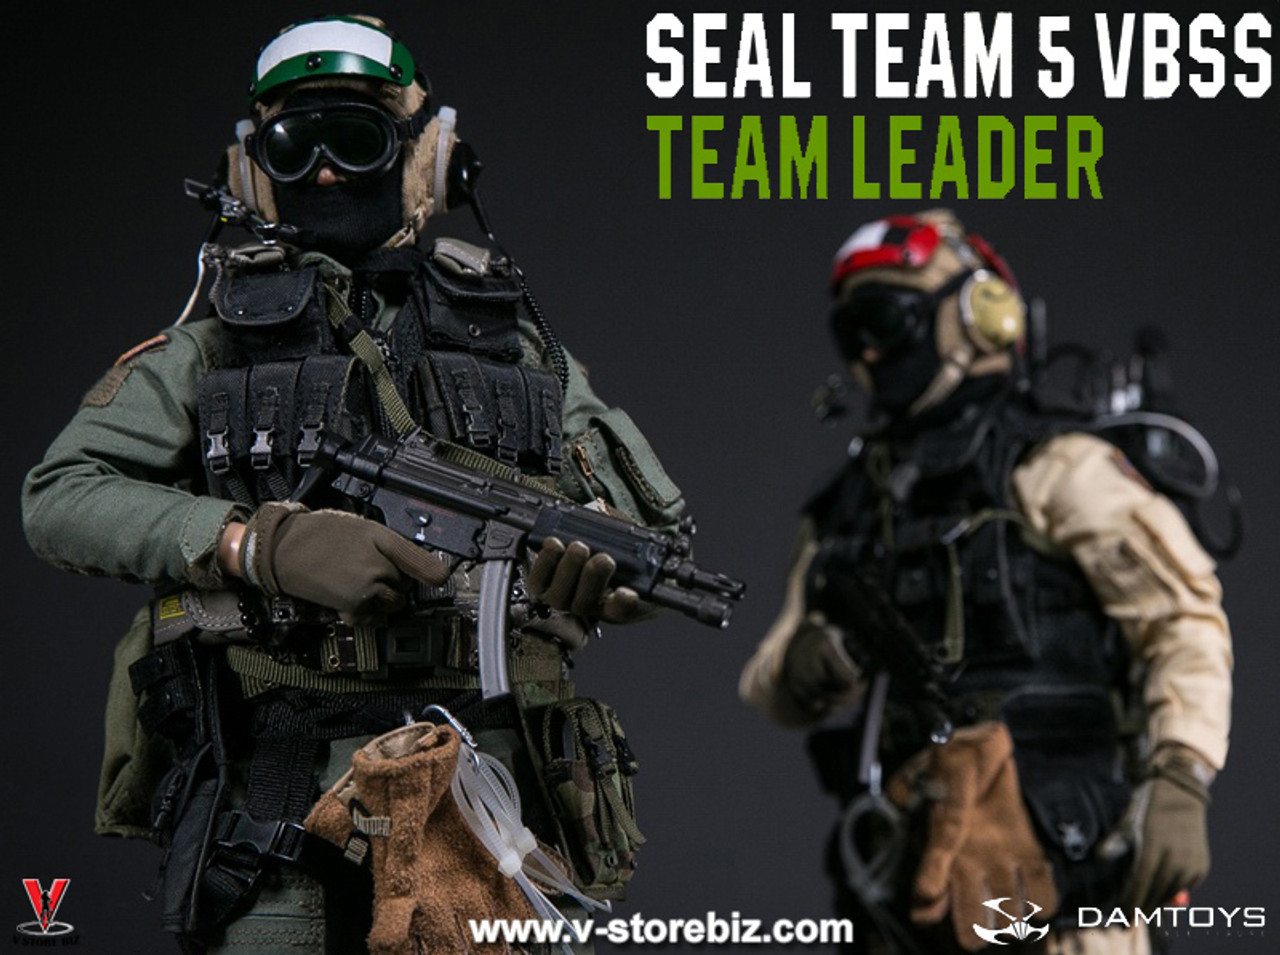 VBSS Team Leader Damtoys Action Figures Leg Pouch /& 3 MP5 Mags 1//6 Scale